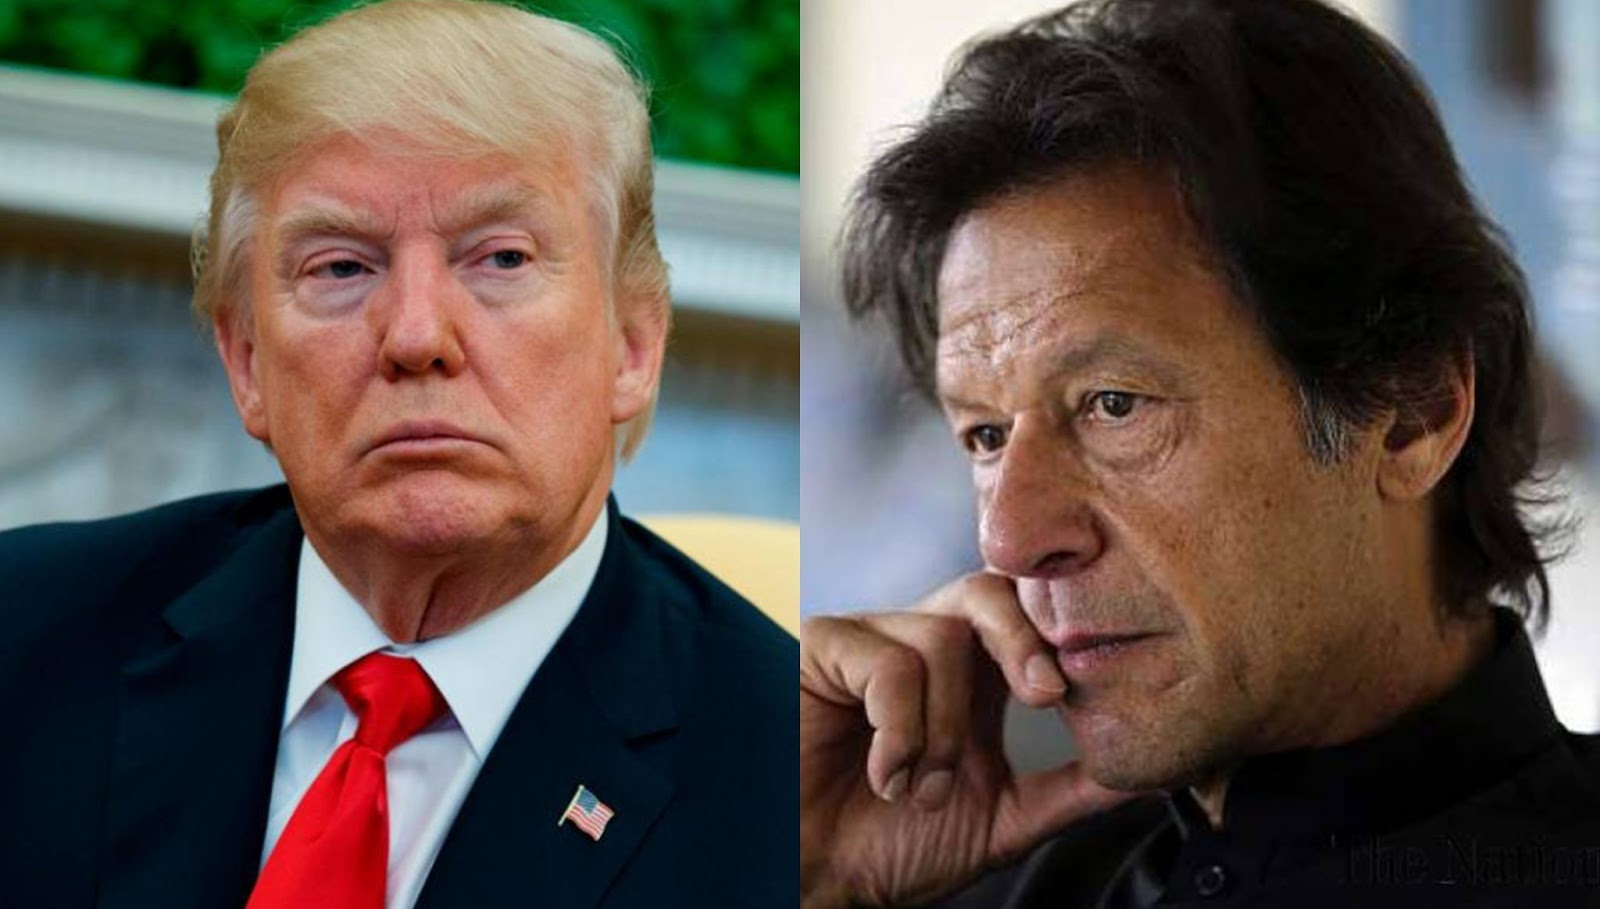 Prime Minster Of Pakistan: Imran Khan visiting US and meeting with Donald Trump